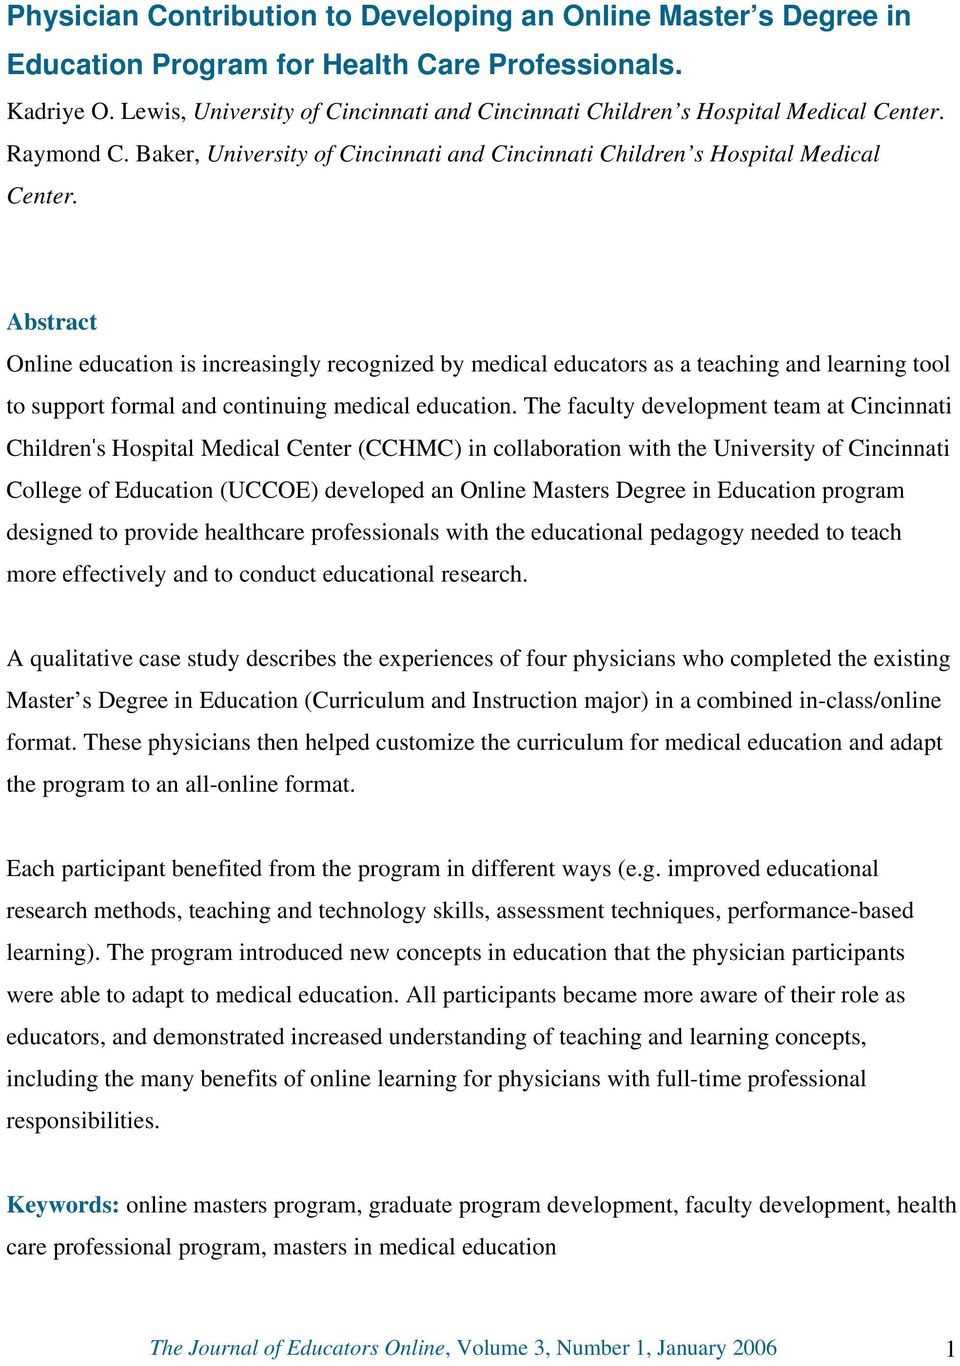 Abstract Online education is increasingly recognized by medical educators as a teaching and learning tool to support formal and continuing medical education.